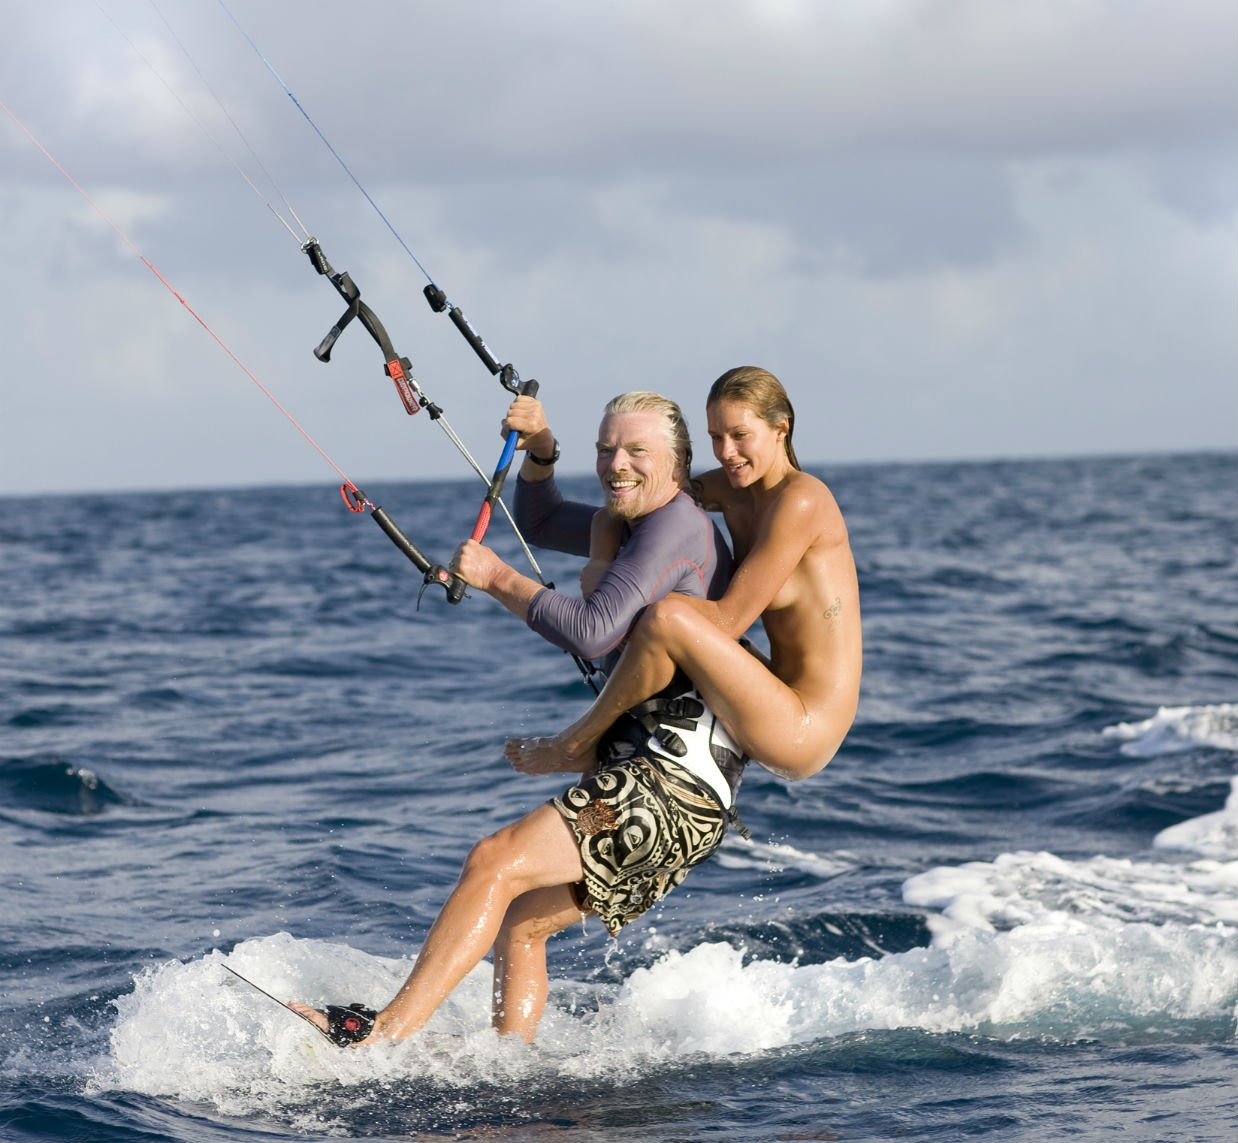 richard_naked_lady_kitesurfing_necker_1